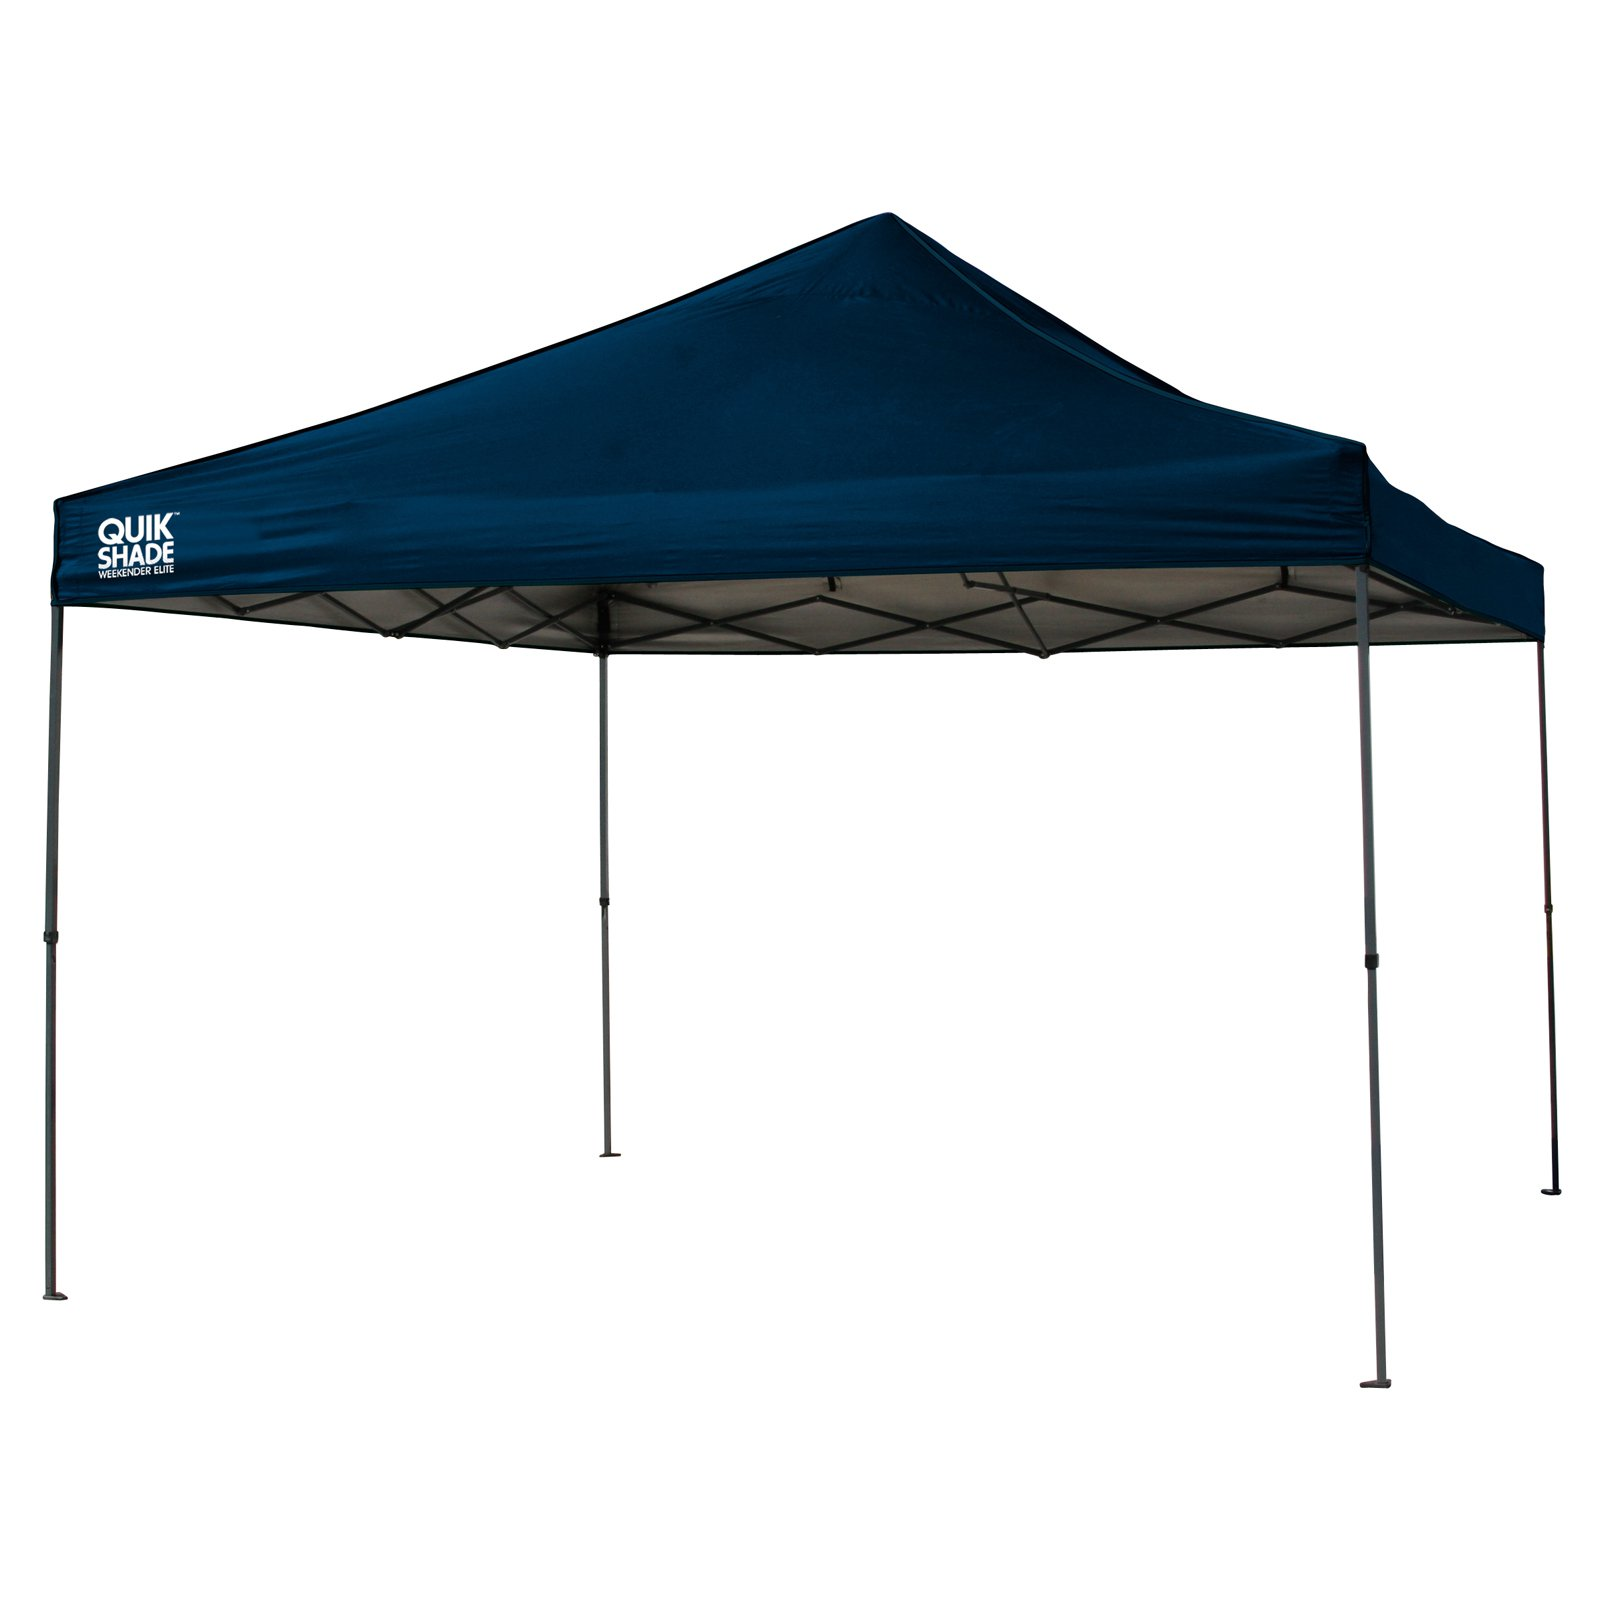 Quik Shade Weekender Elite 12'x12' Straight Leg Instant Canopy (144 sq. ft. coverage) by Shelter Logic